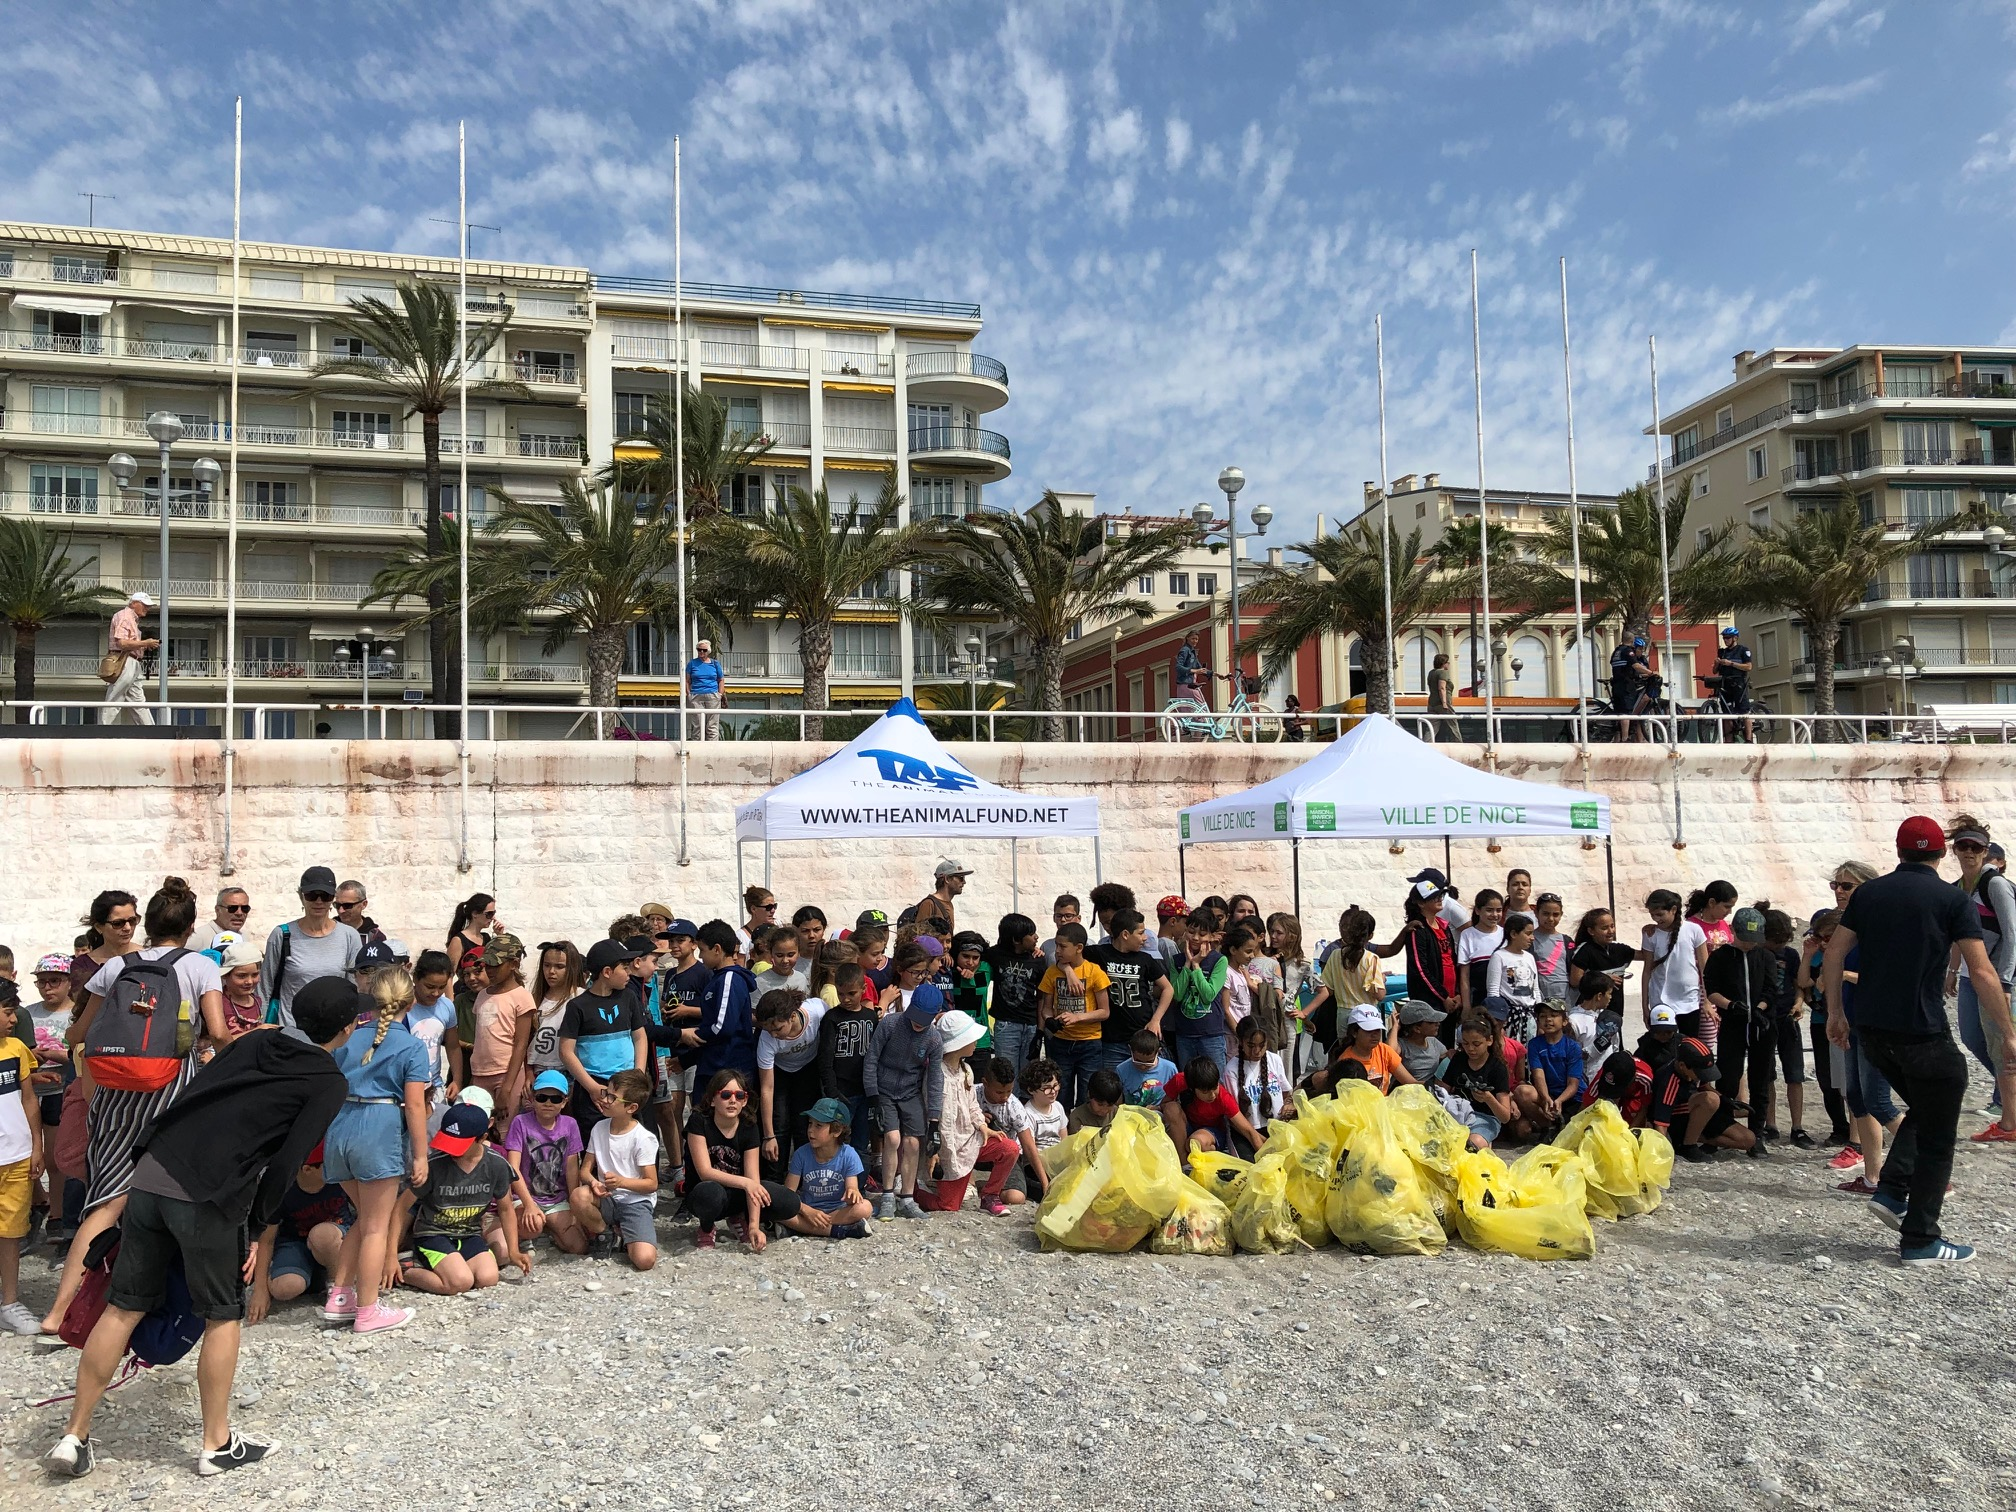 June 7, 2019 – Ocean clean up